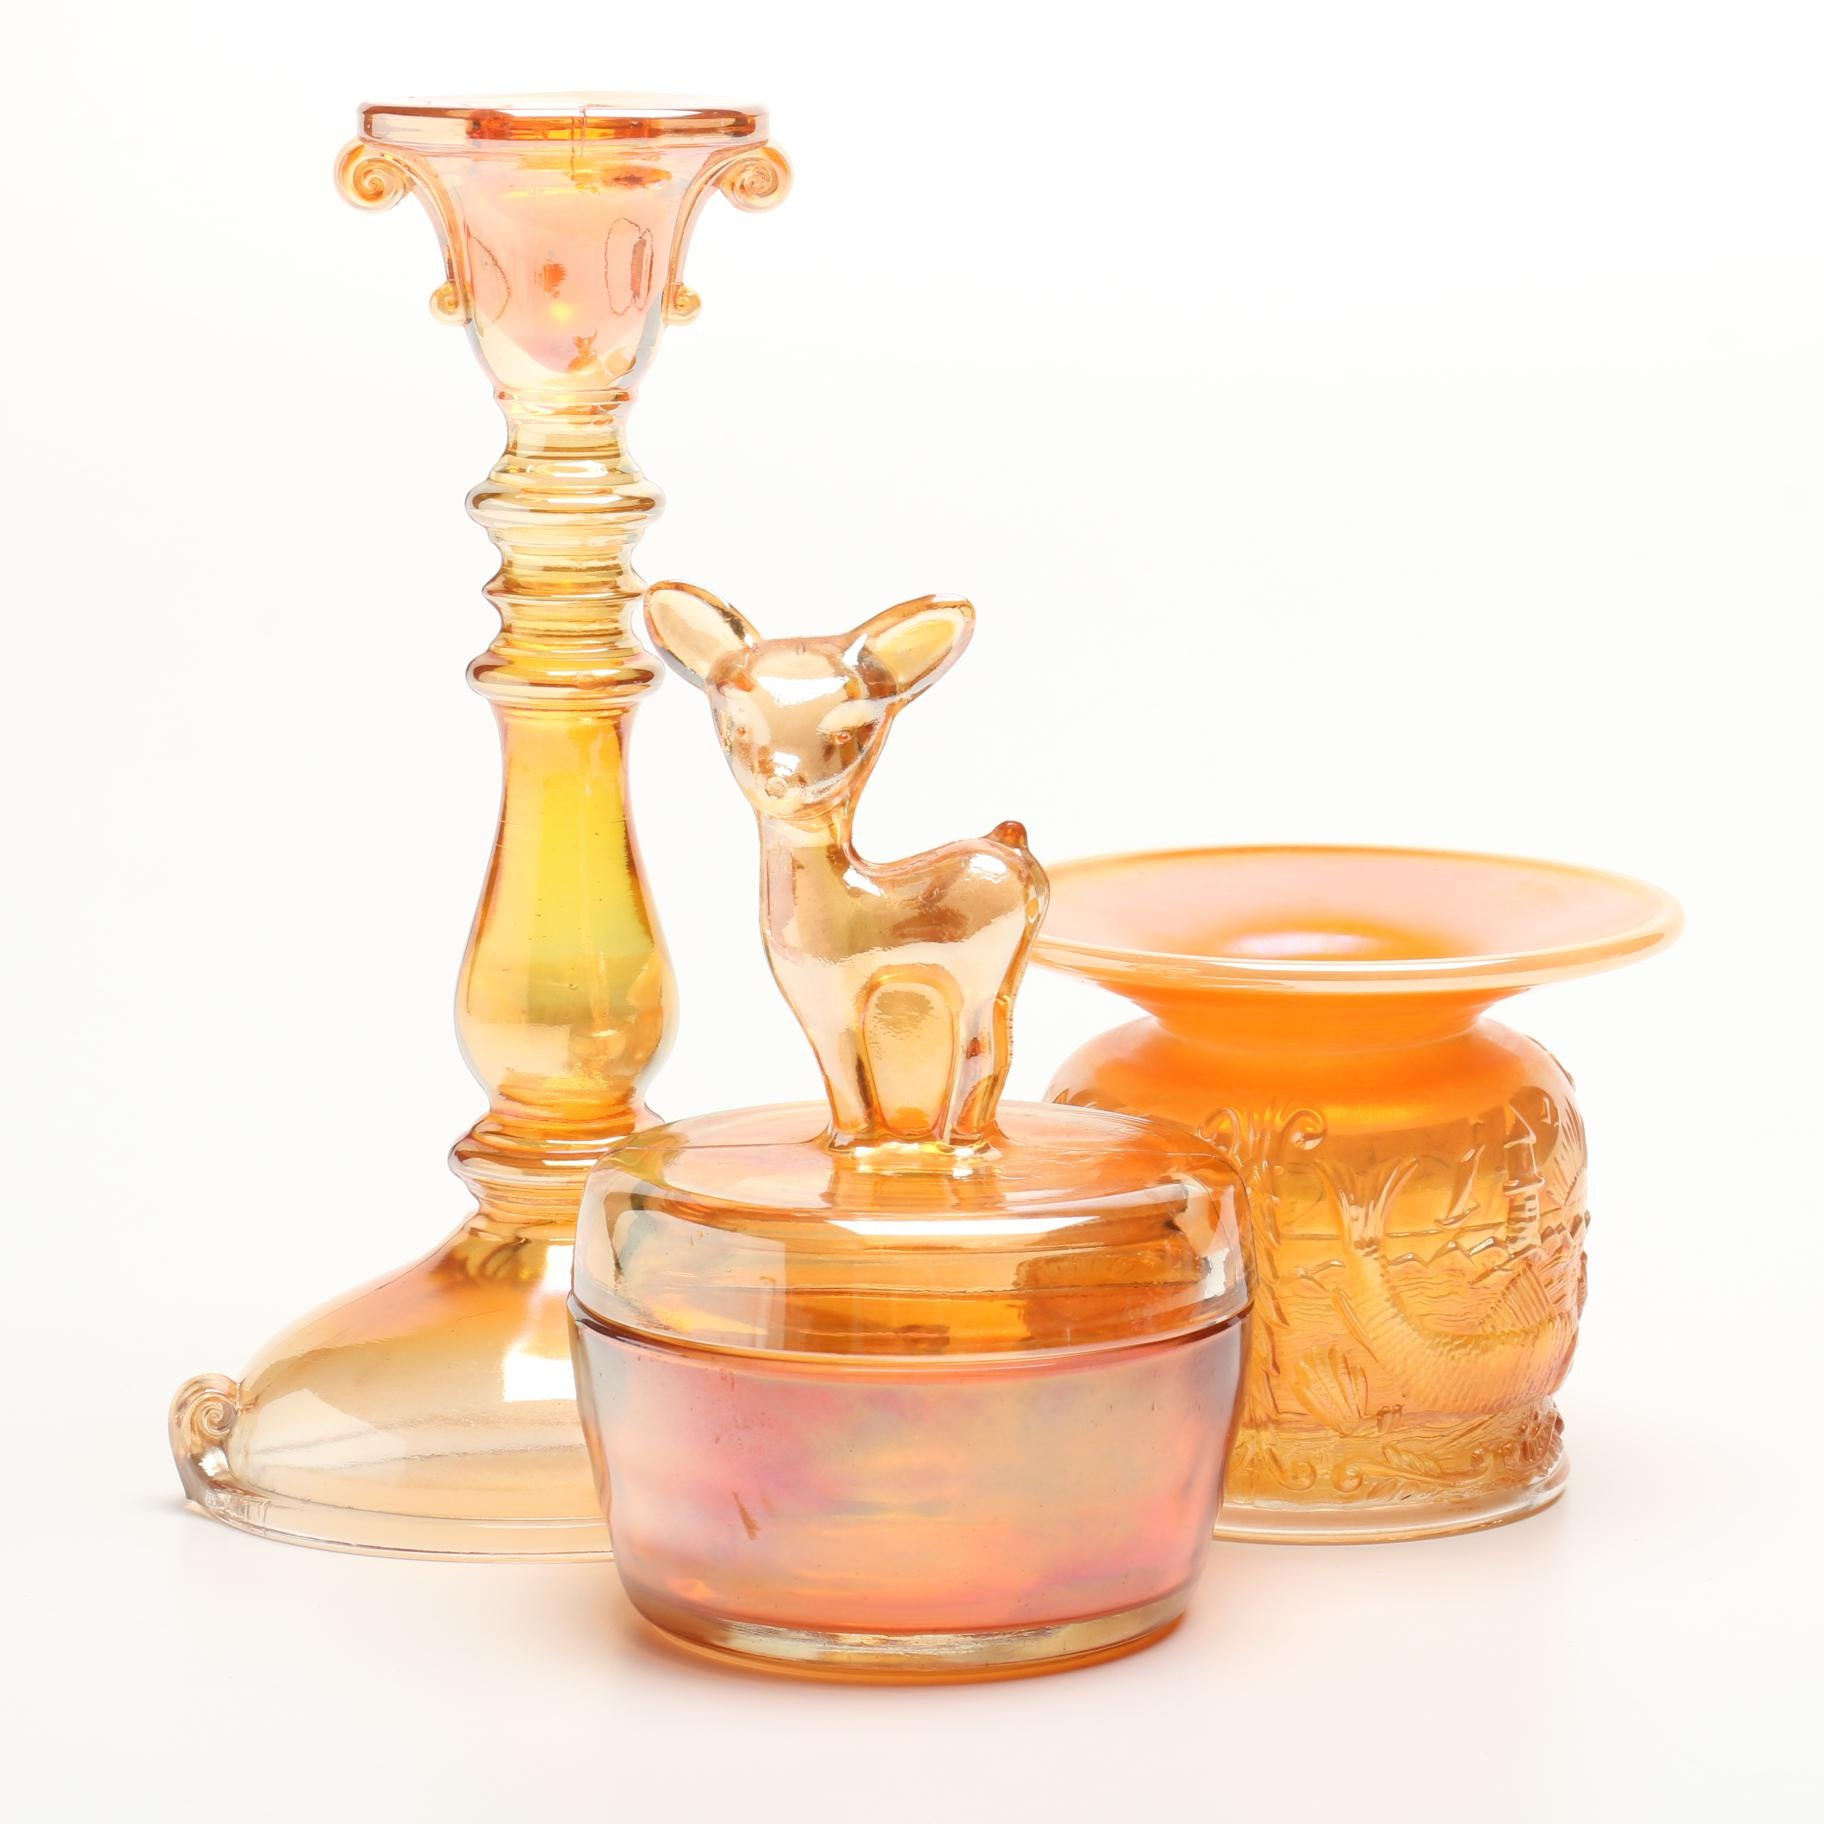 Vintage Iridized Carnival Glass Fawn Jar, Candlestick and Spittoon